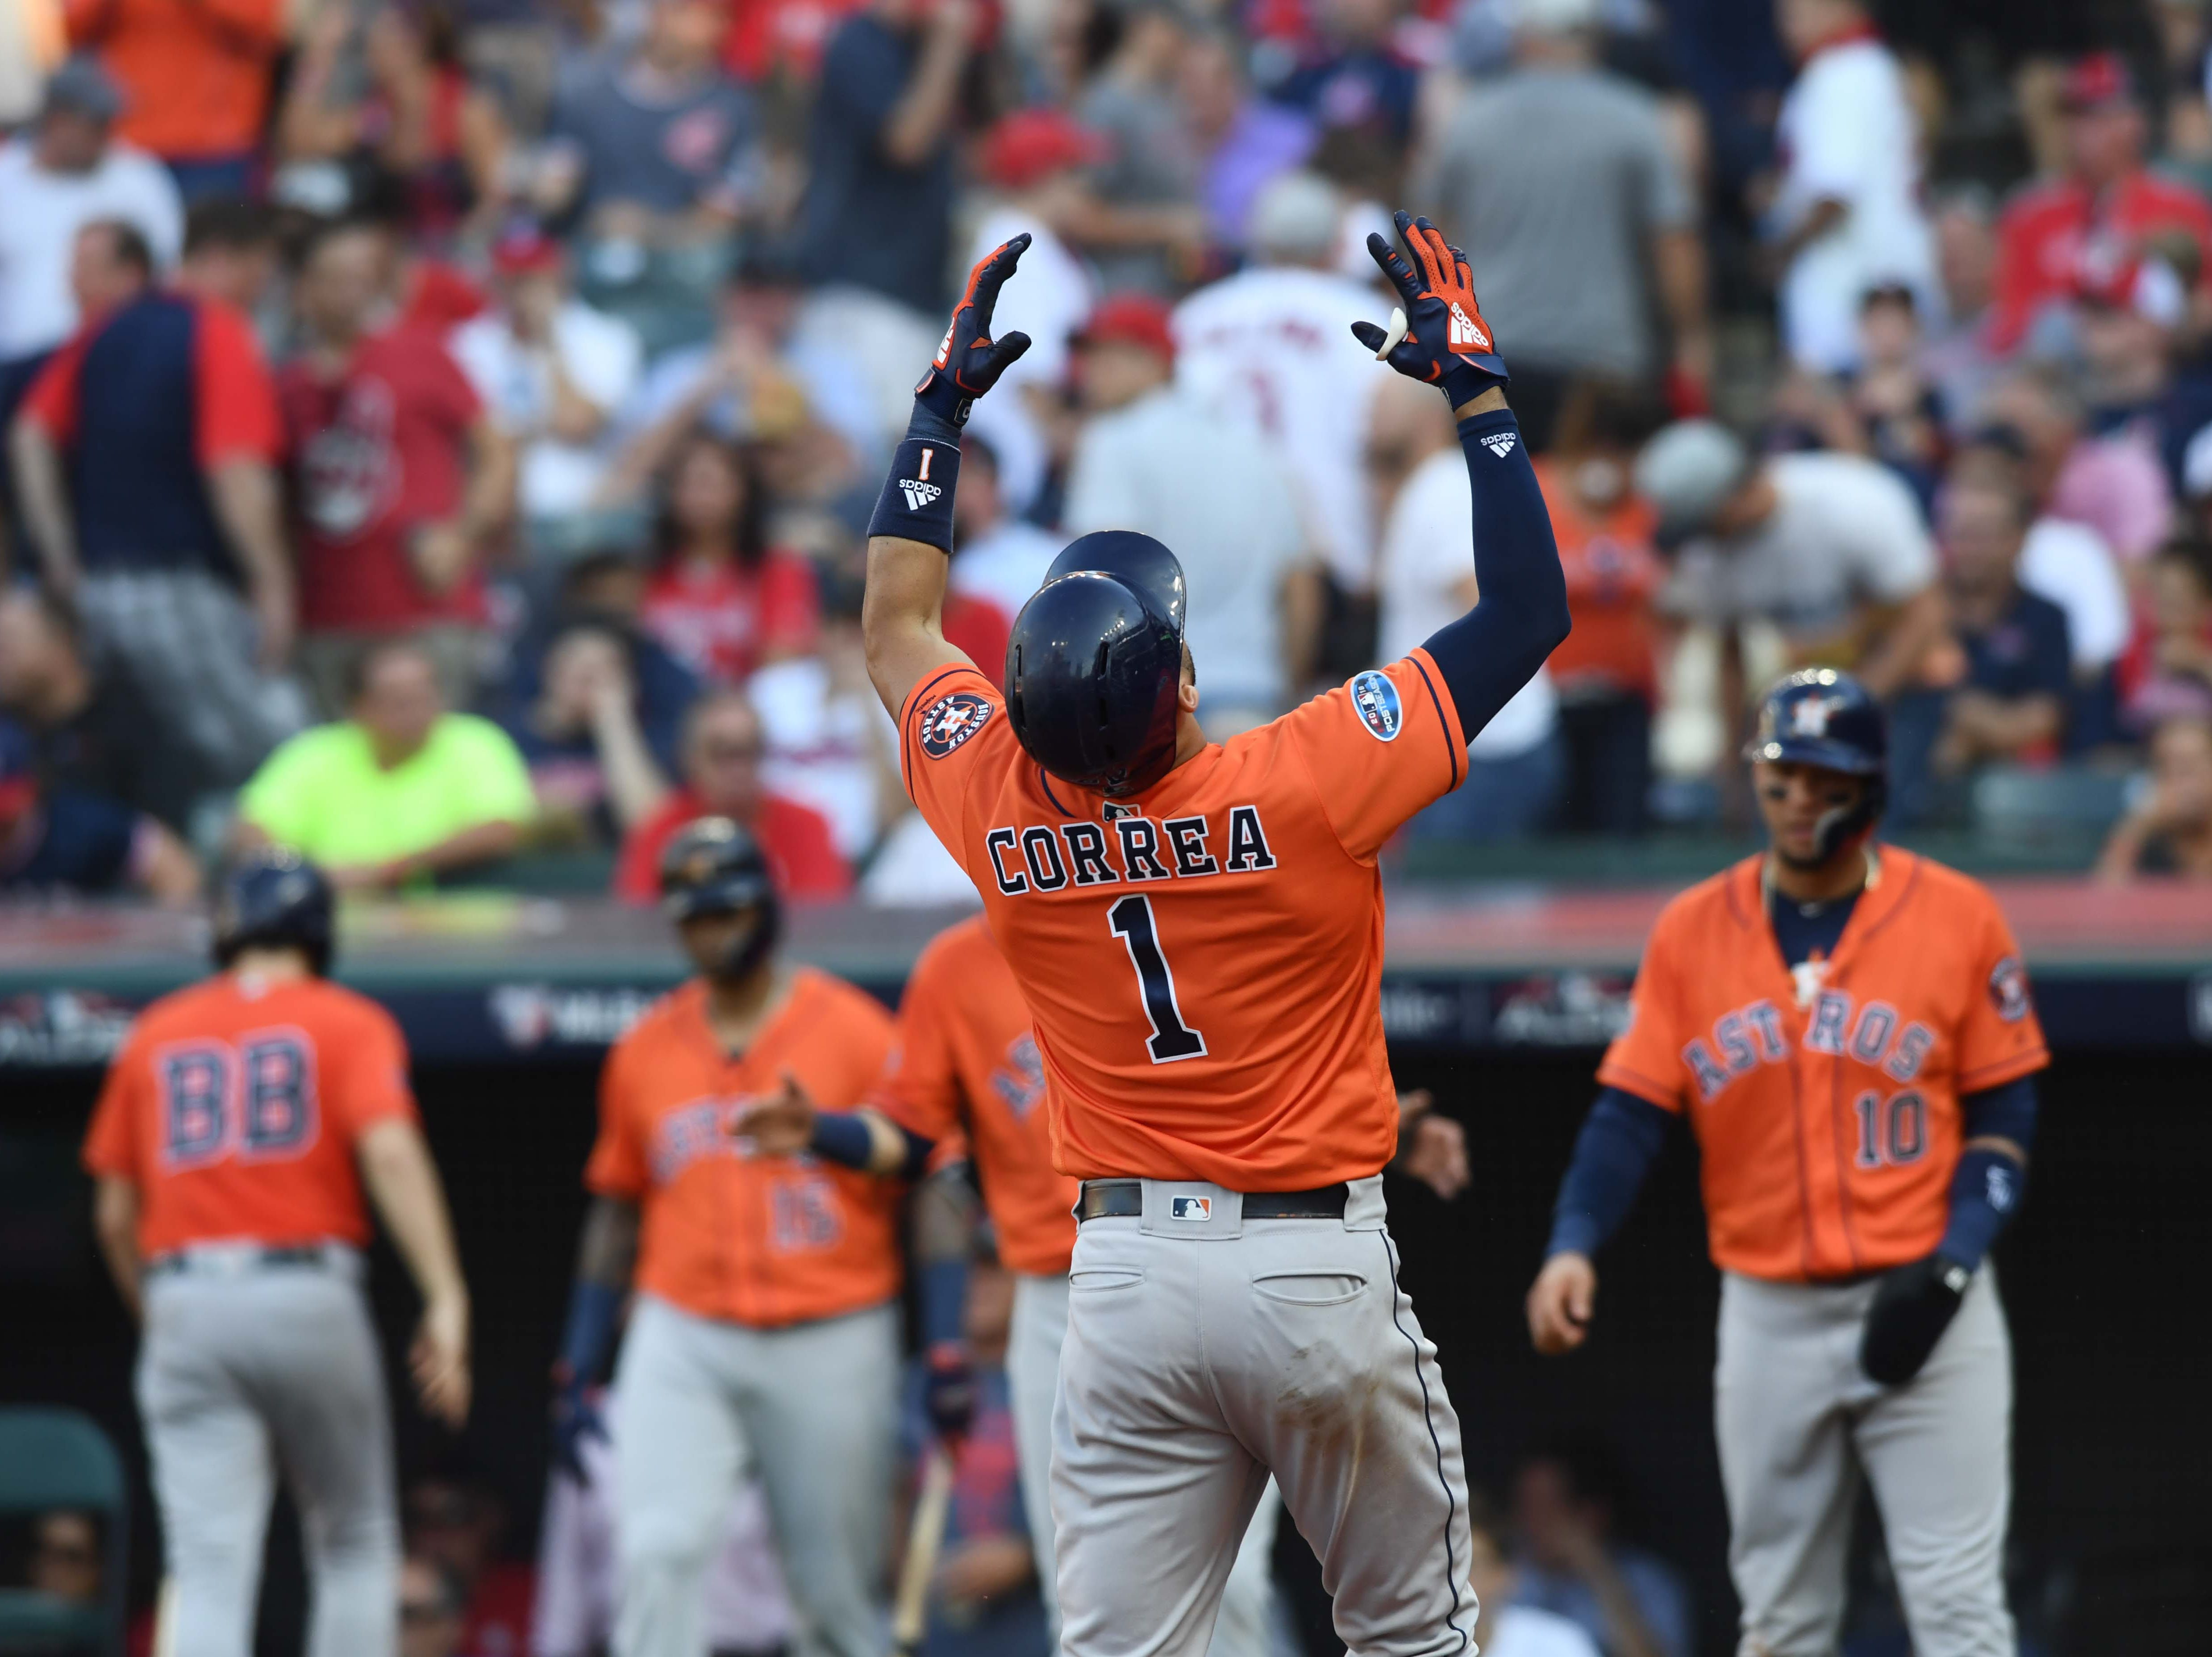 ALDS Game 3: Carlos Correa reacts after his three-run homer in the eighth.